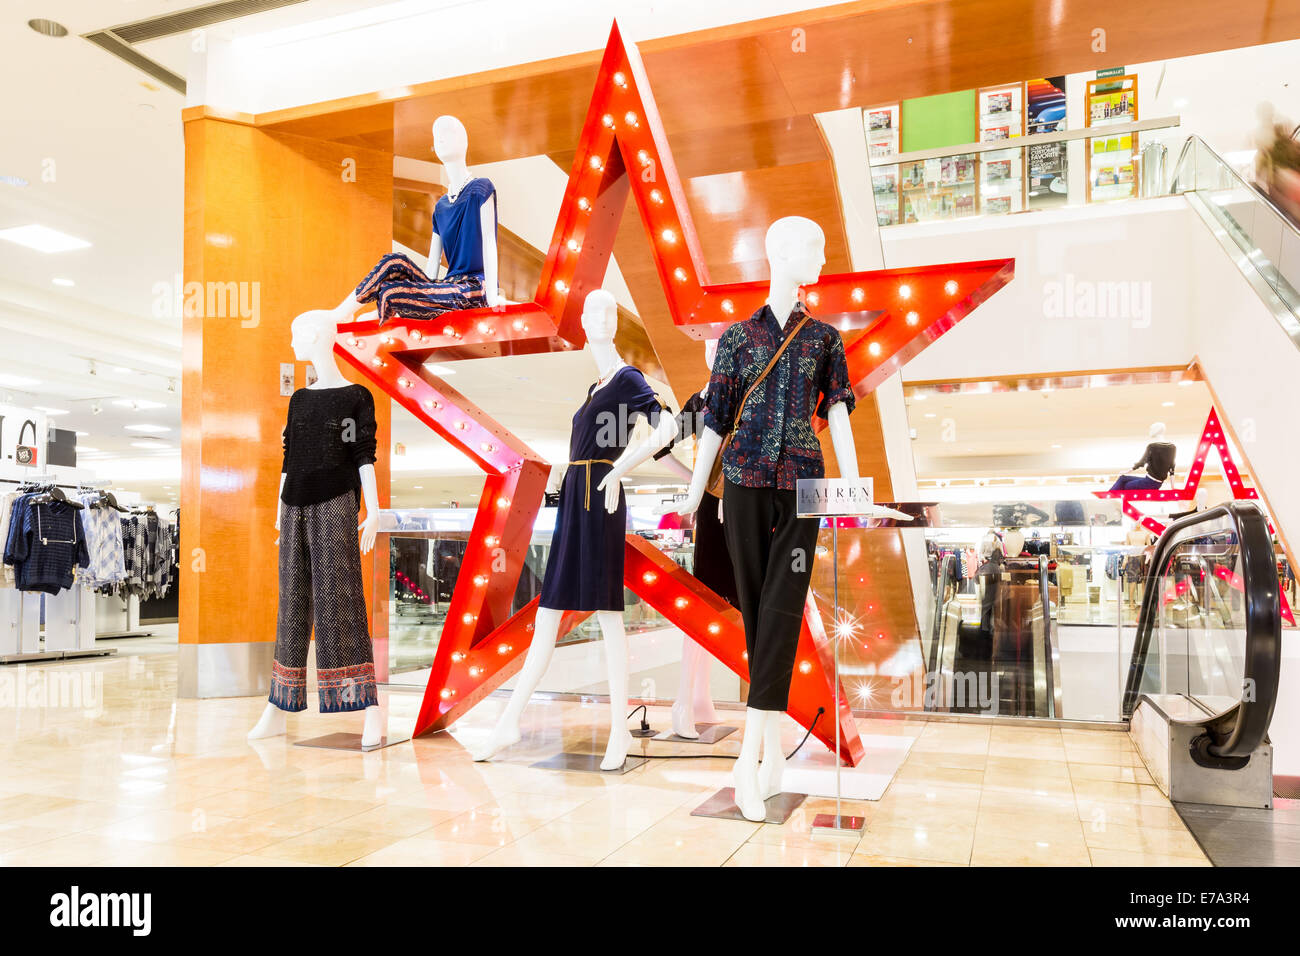 Macy's store inside The Mall at Short Hills - Stock Image